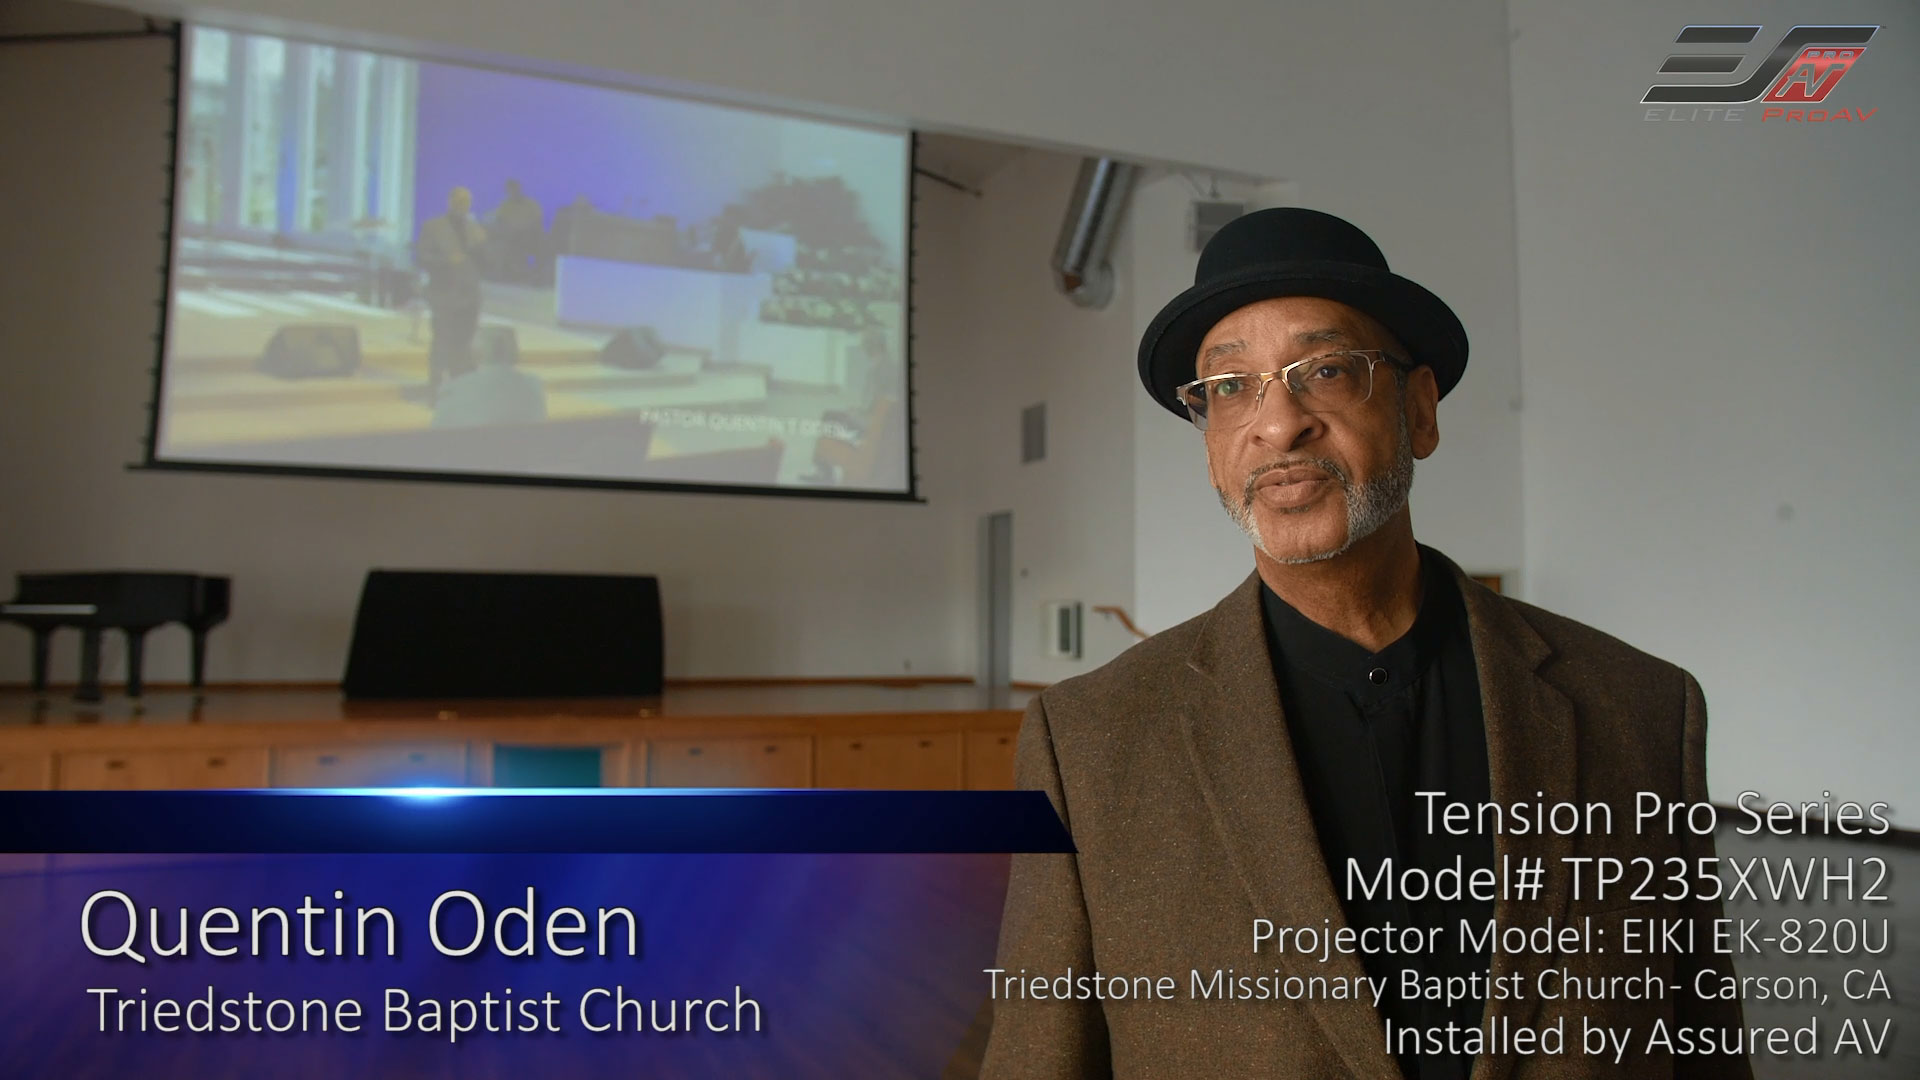 Tension Pro Series at Triedstone Missionary Baptist Church in Carson, CA